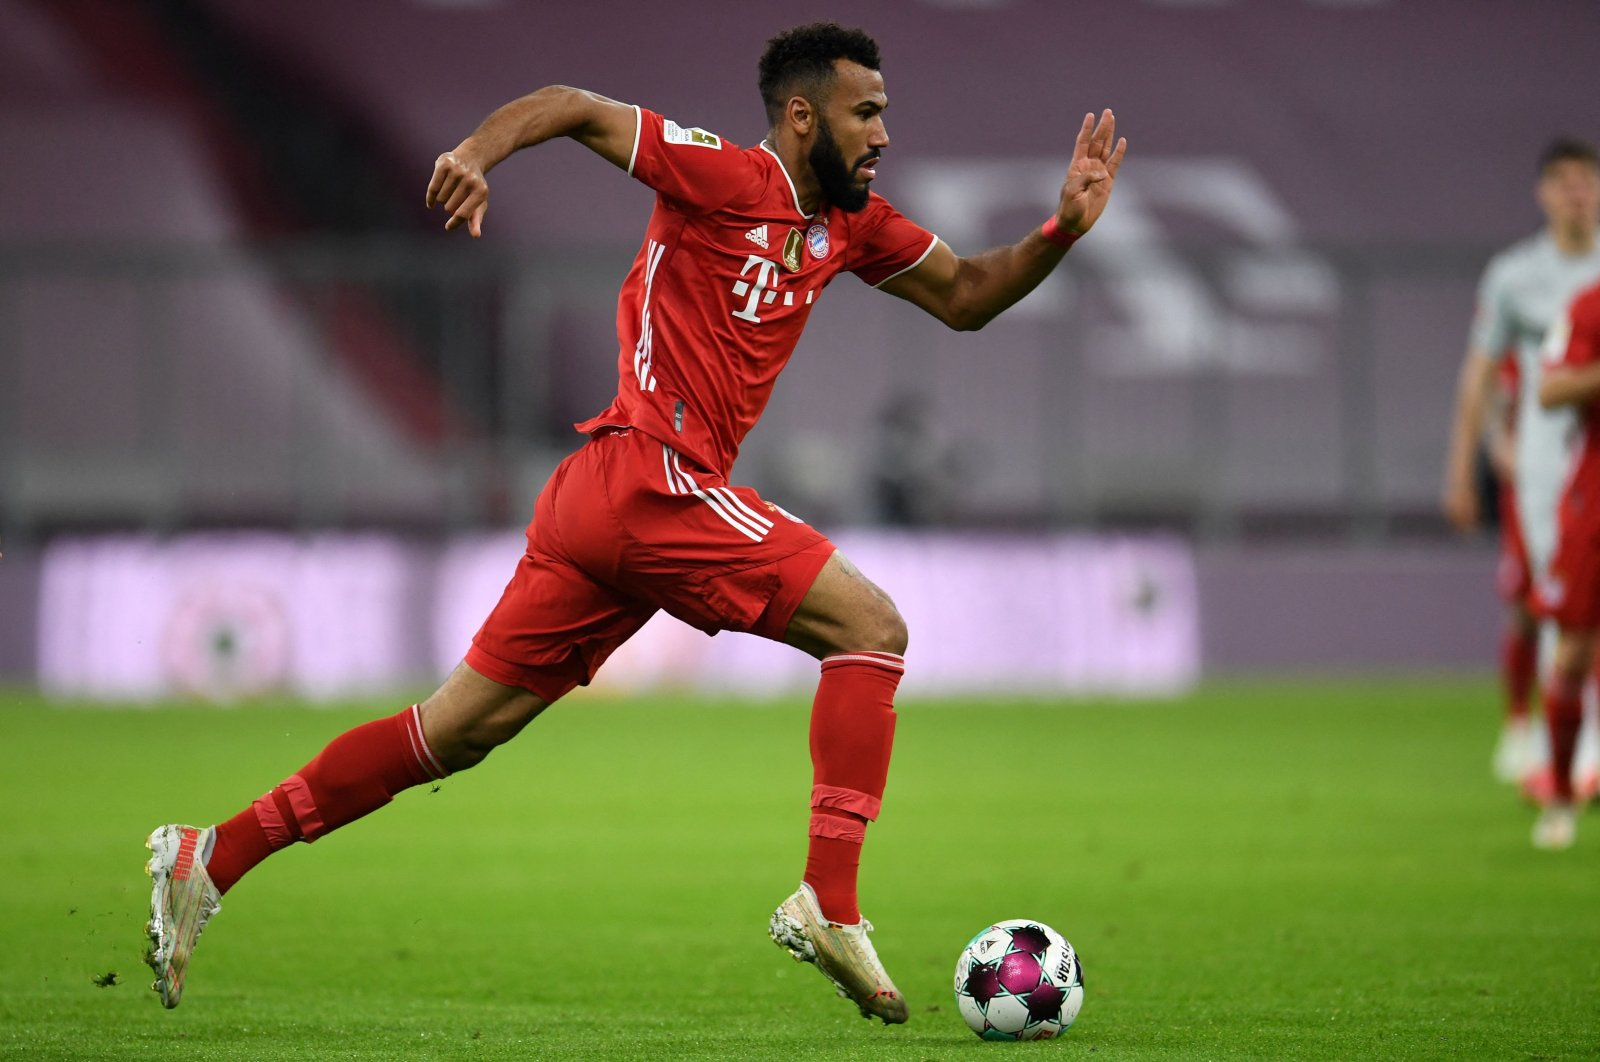 Bayern Munich's Eric Maxim Choupo-Moting runs with the ball during a Bundesliga match against Bayer Leverkusen at the Allianz Arena, in Munich, Germany, April 20, 2021. (AFP Photo)